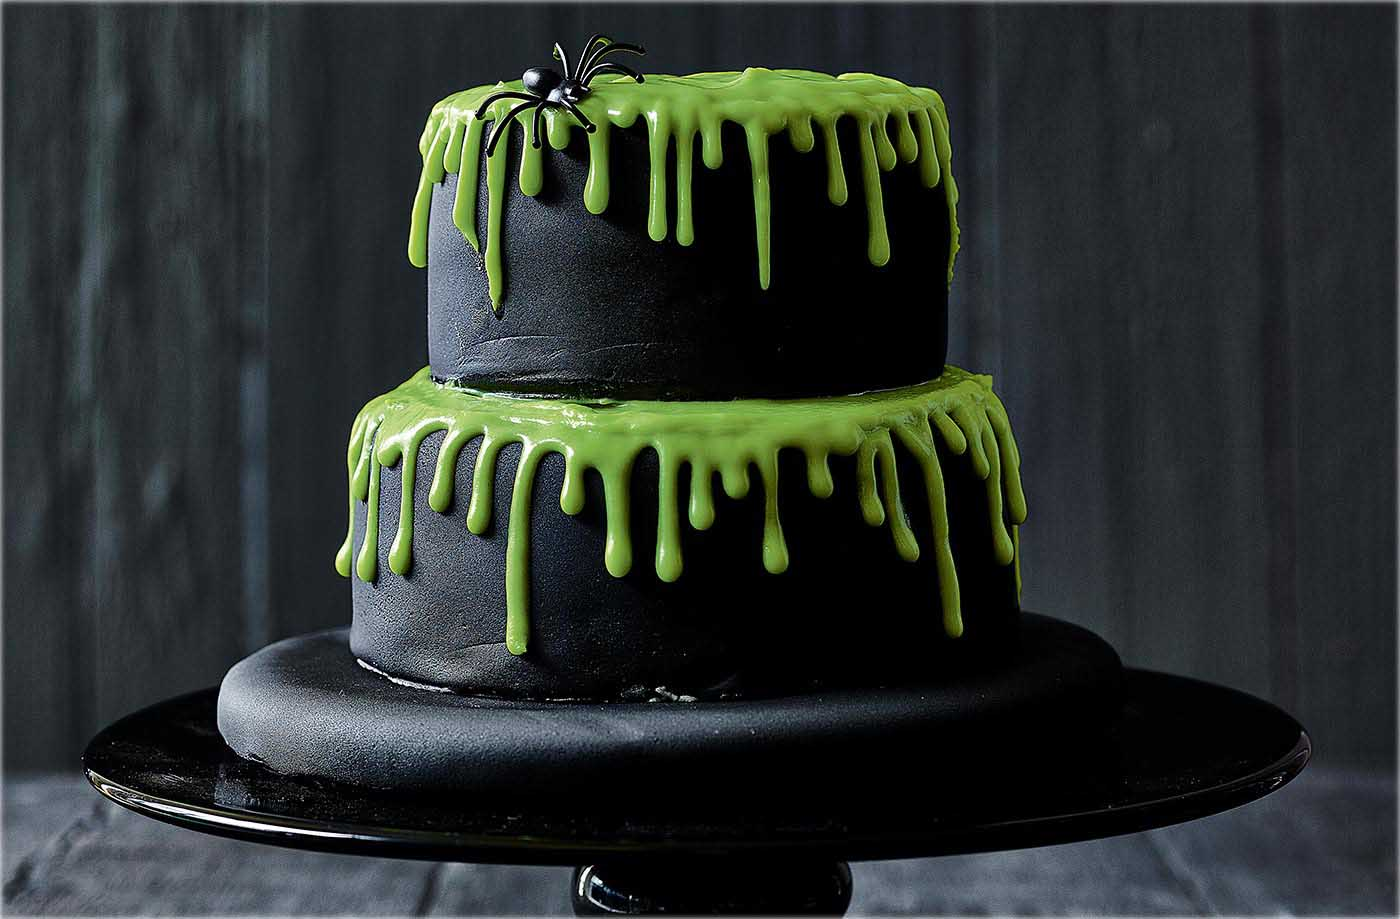 Delicious Halloween Cake Recipes